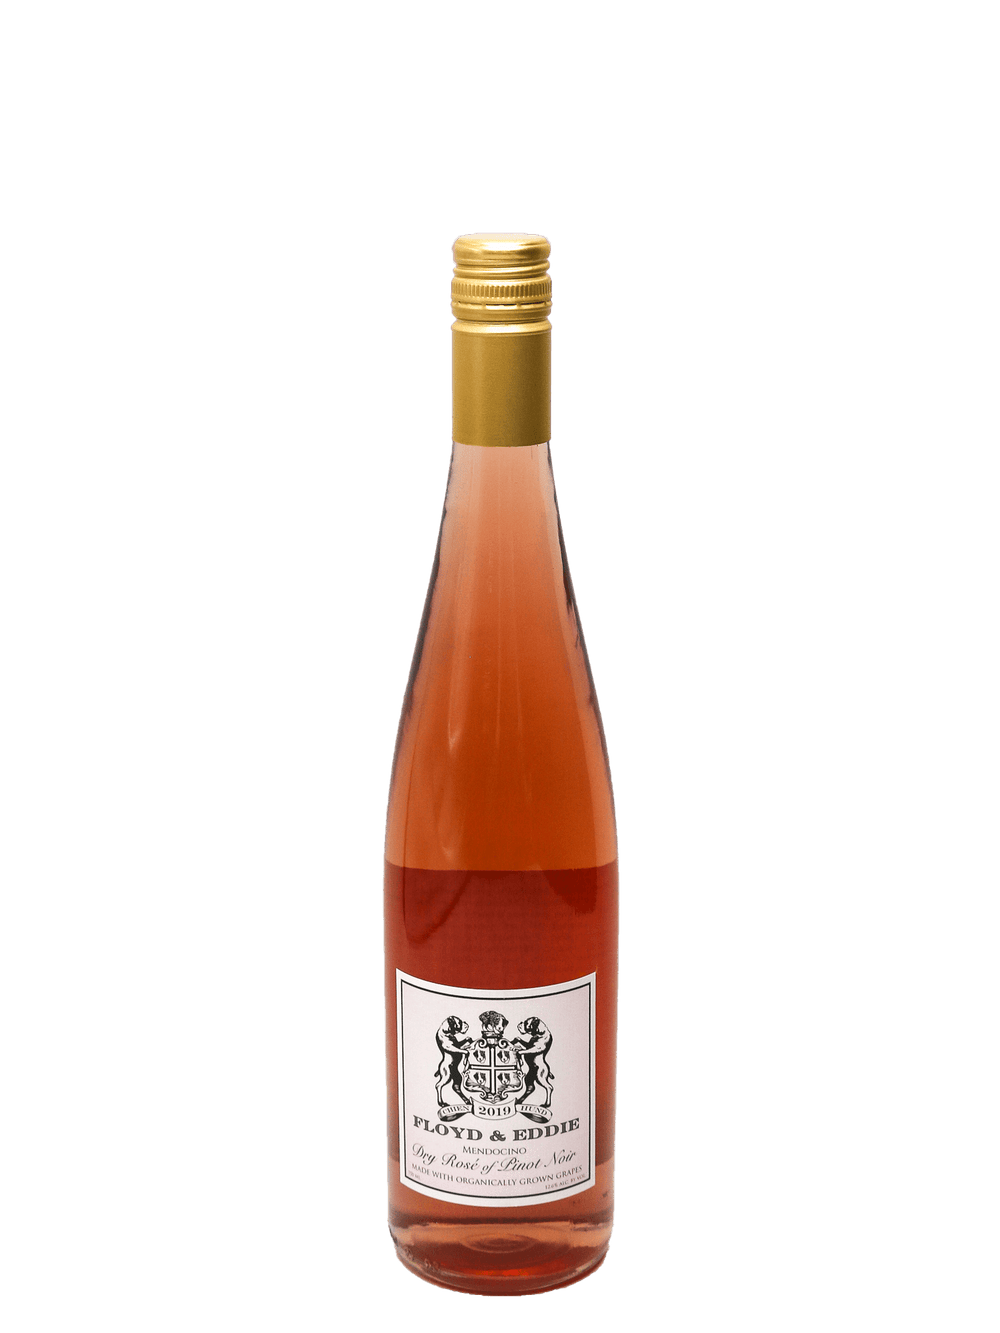 2019 Floyd & Eddie Naughty Boy Dry Rose of Pinot Noir